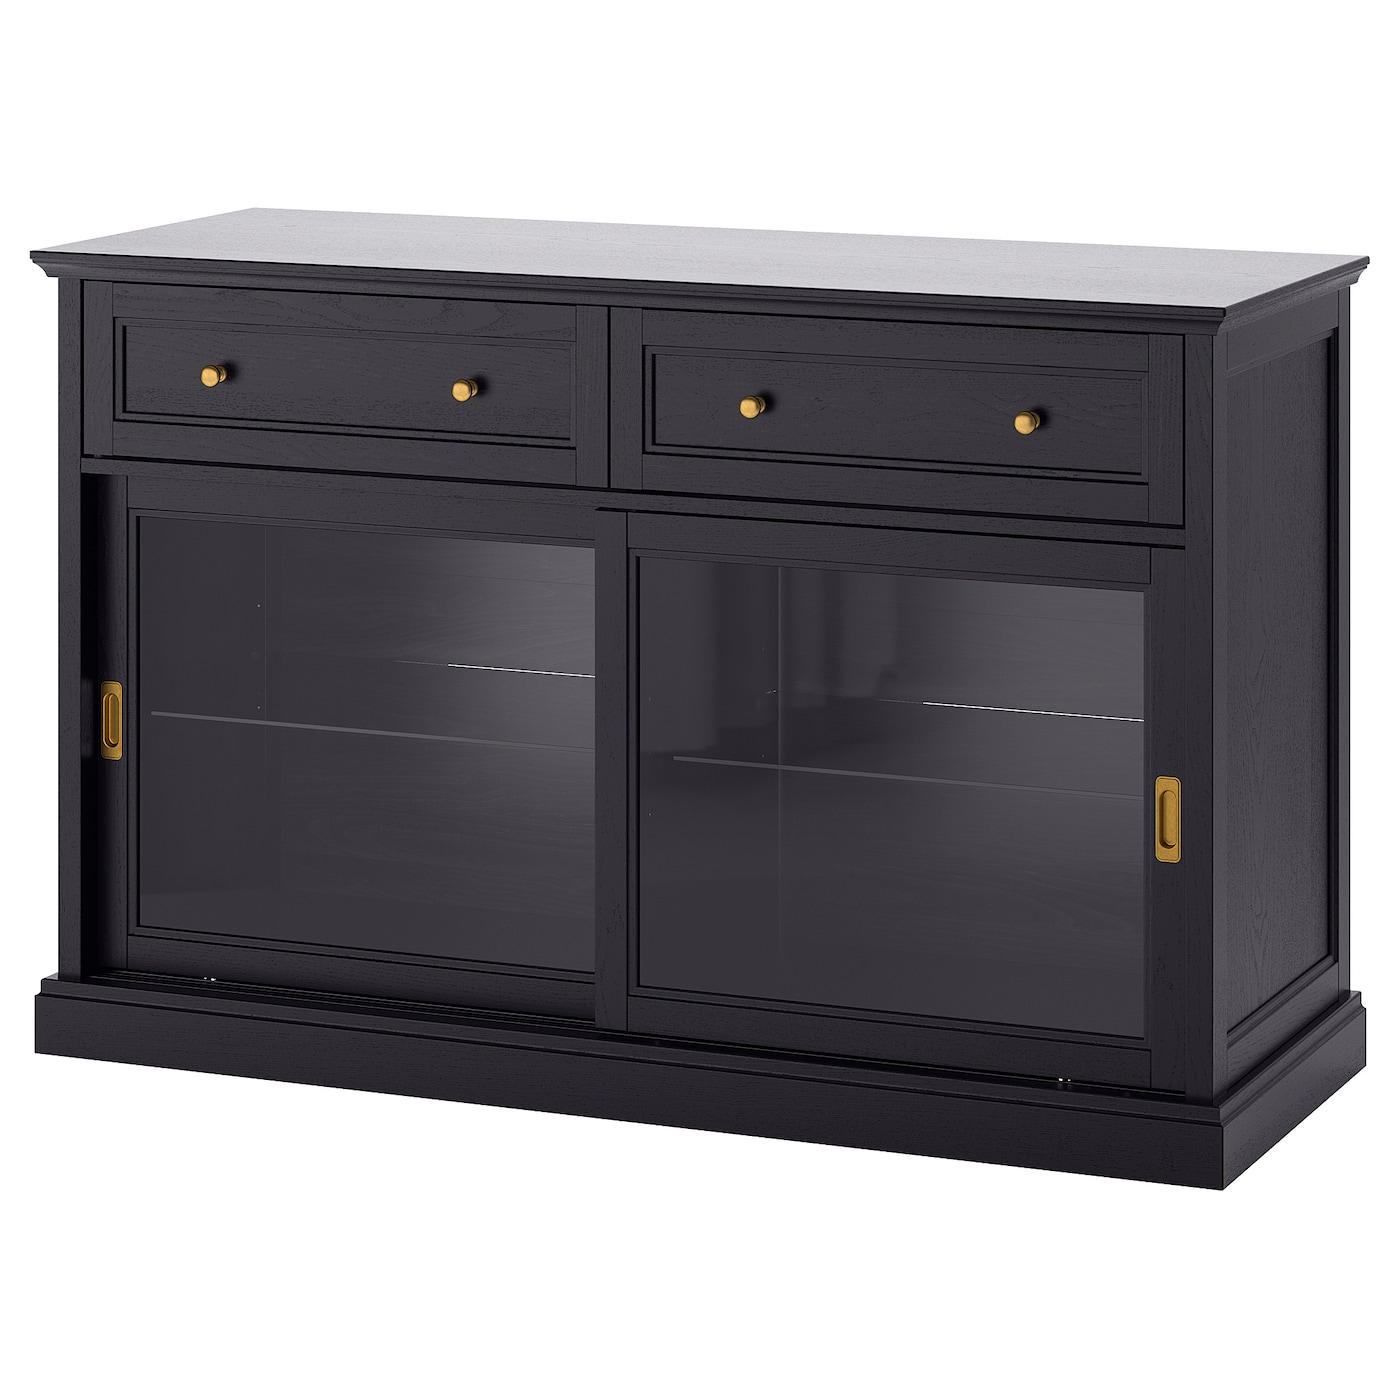 sideboards & buffet cabinets | ikea